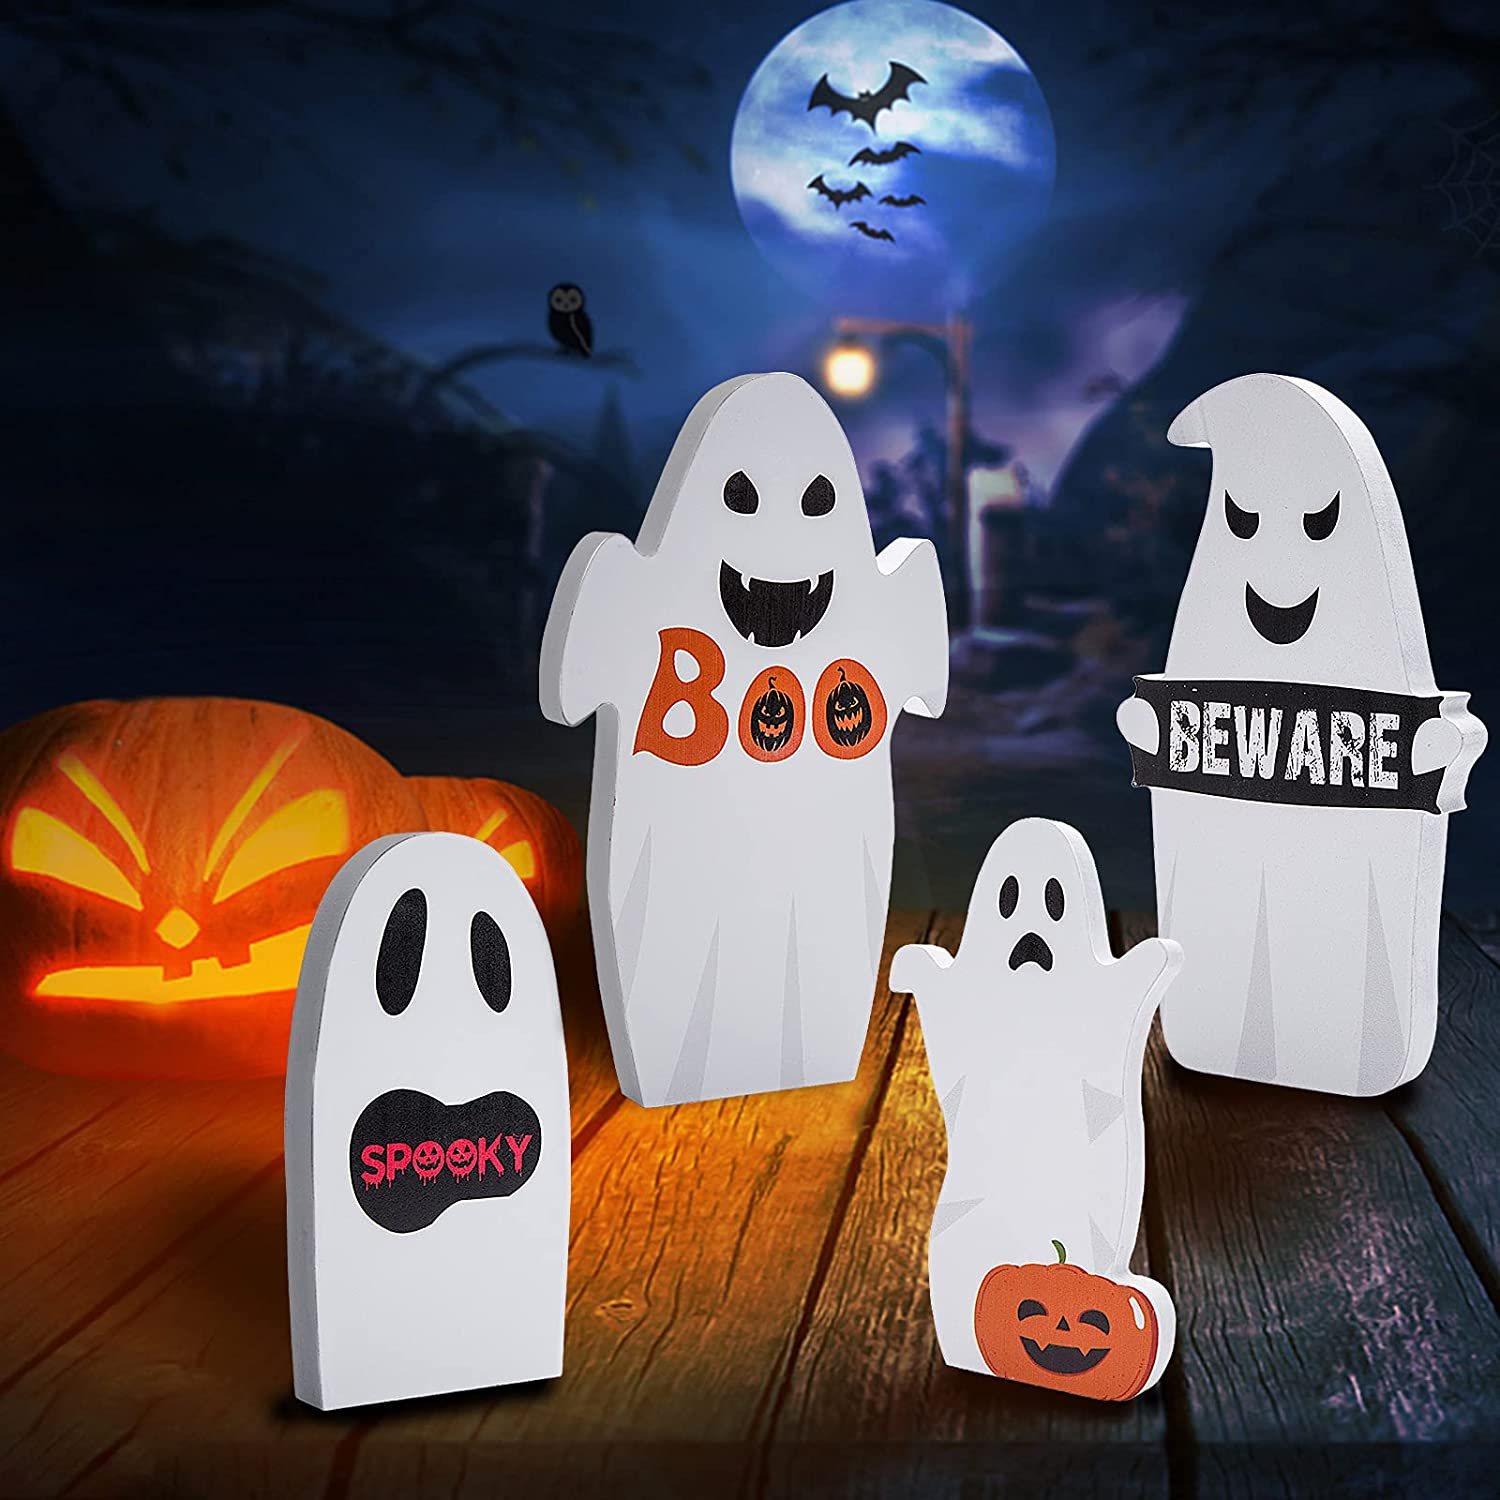 Sfcddtlg 4 Sets Ghost Wooden Table Sign-Halloween Ghost Pumpkin Wooden Table Centerpieces-Halloween Boo Wood Sign Beware Spooky Table Decor for Halloween Party Decoration(4pcs)